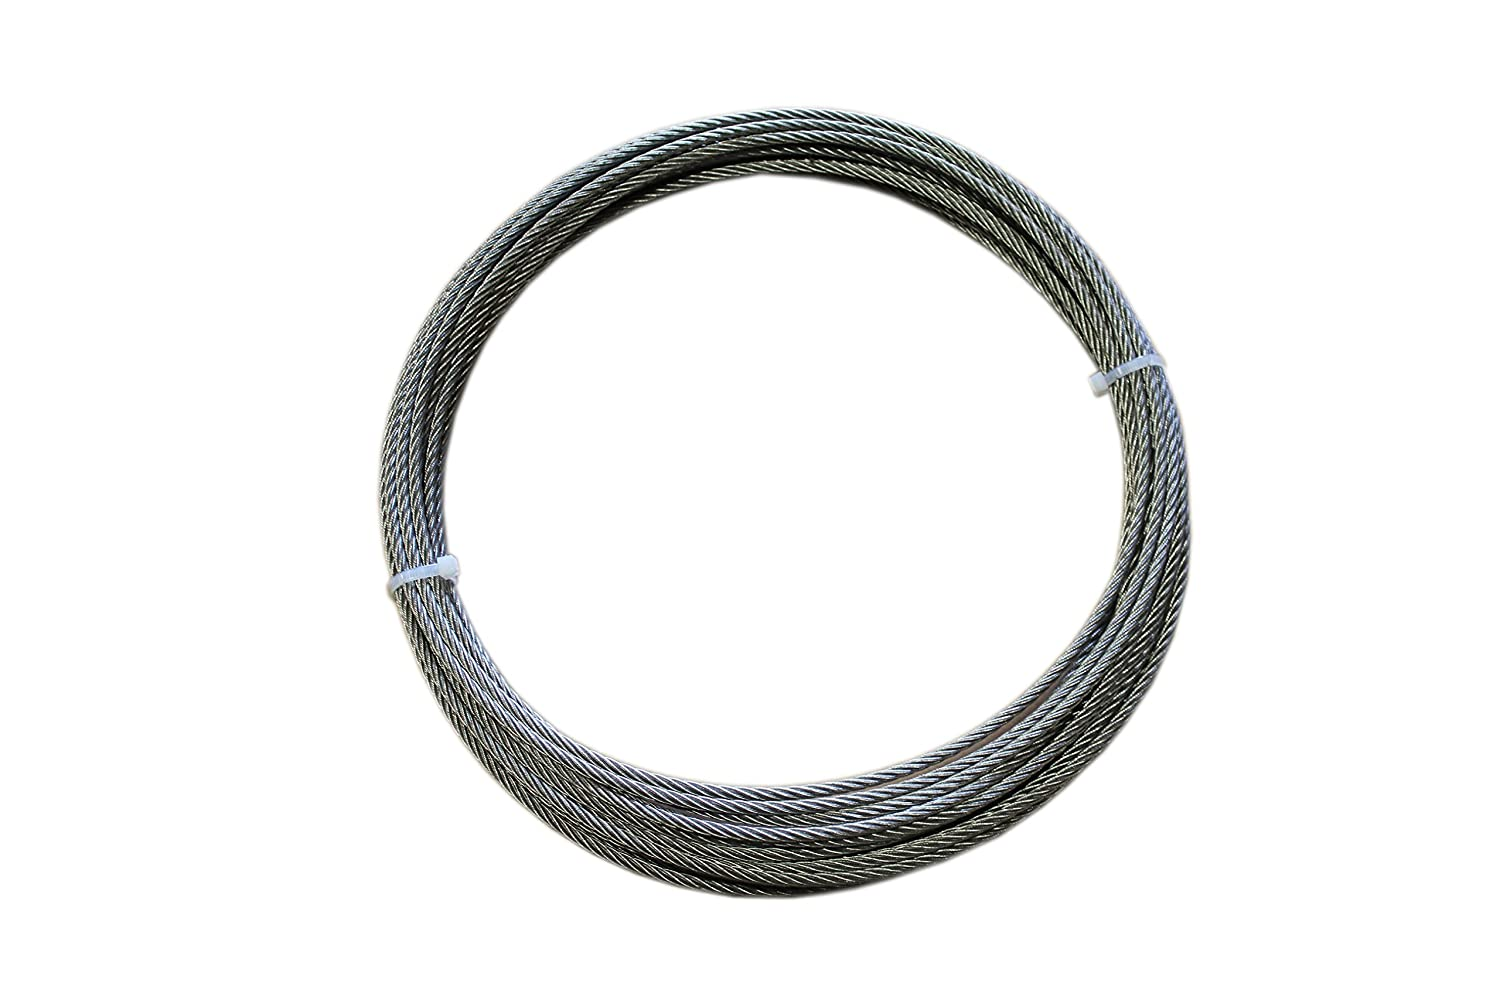 Loos Stainless Steel 18-8 Wire Rope, Military Specification, Lubricated, 7x19 Strand Core, 1/8' Bare OD, 10' Length, 1760 lbs Breaking Strength 1/8 Bare OD 10' Length Loos & Co SF12579D CA00K973